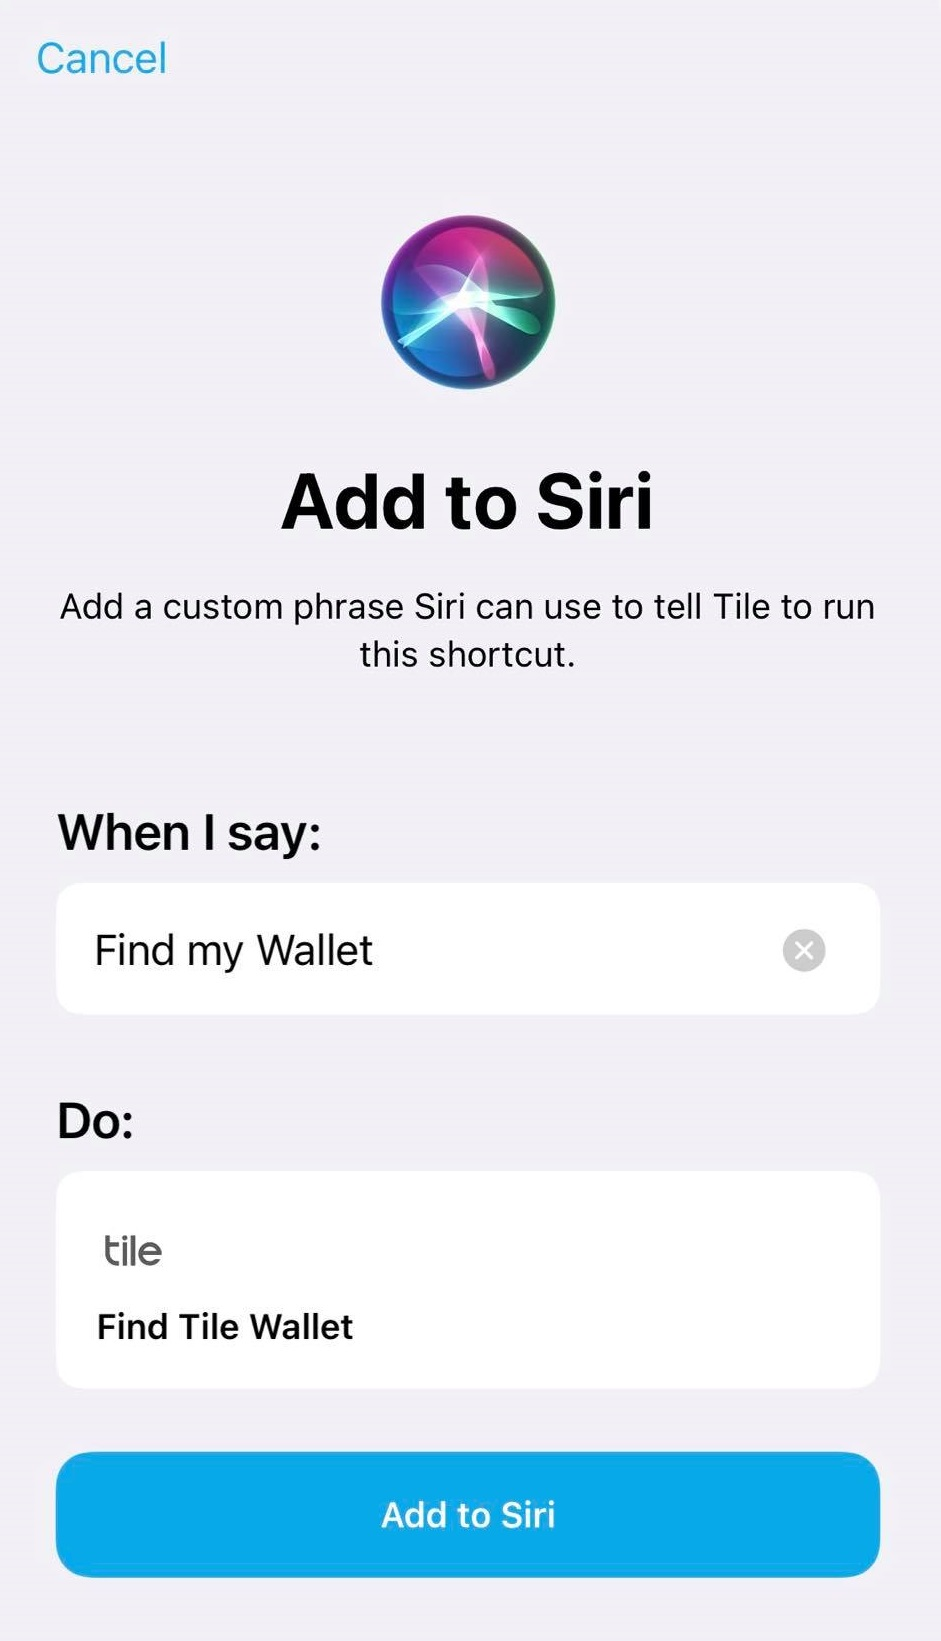 how can i use siri to find my tiles